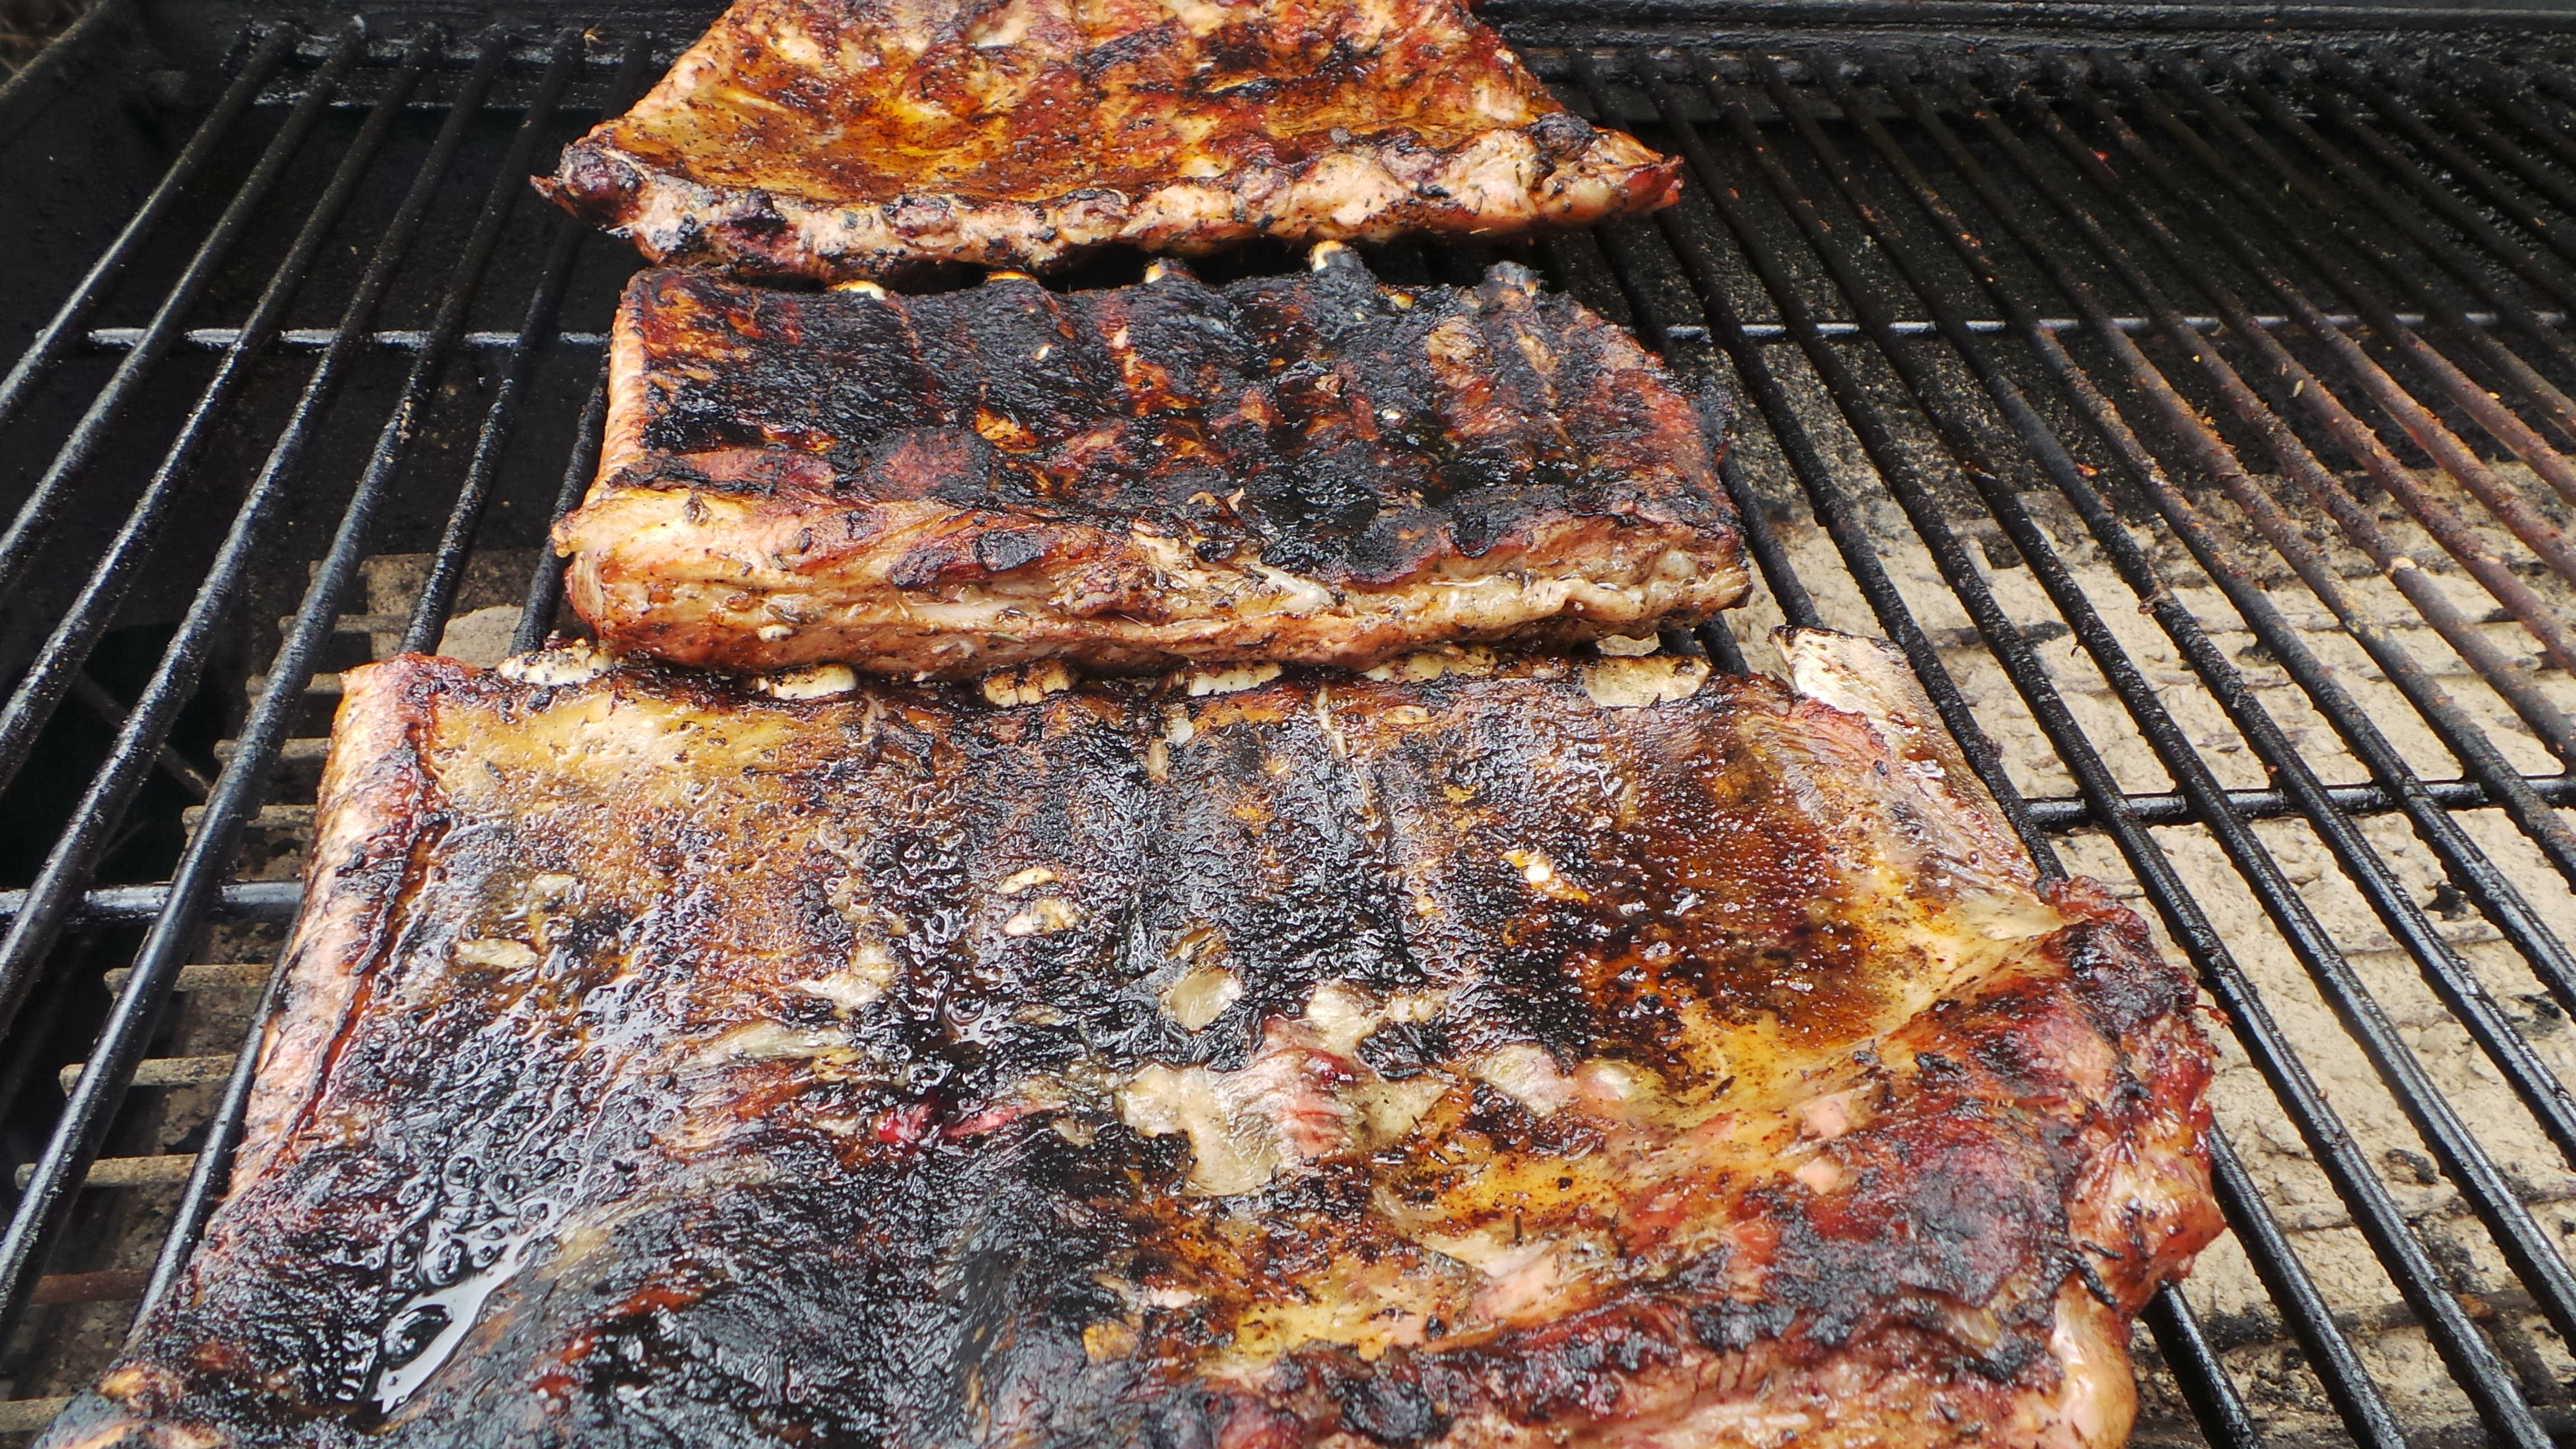 Quick Baby Back Ribs Recipe Allrecipes,What Is Triple Sec Substitute